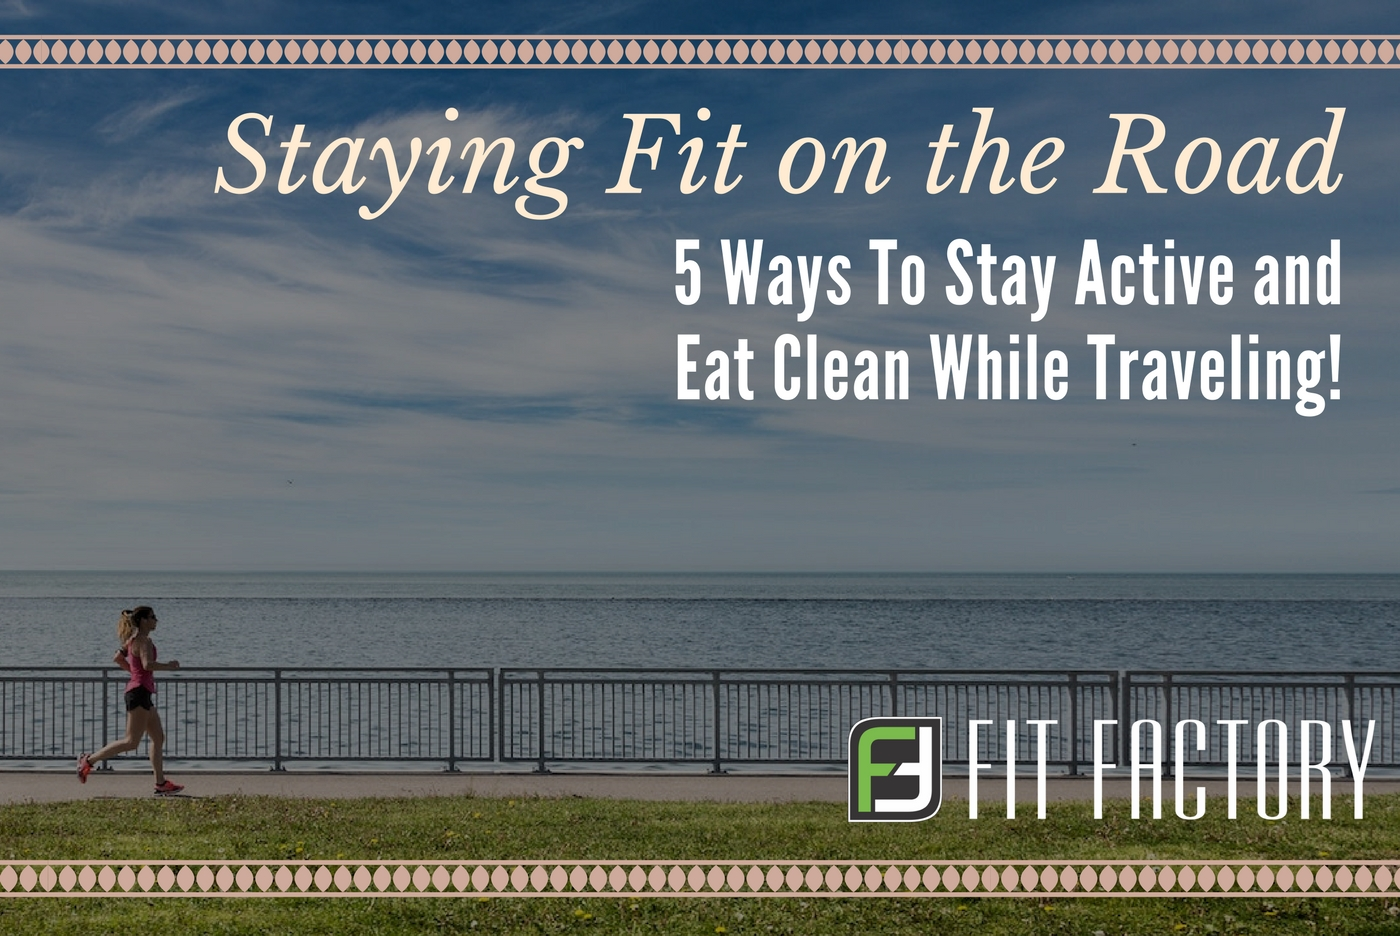 Staying Fit on the Road